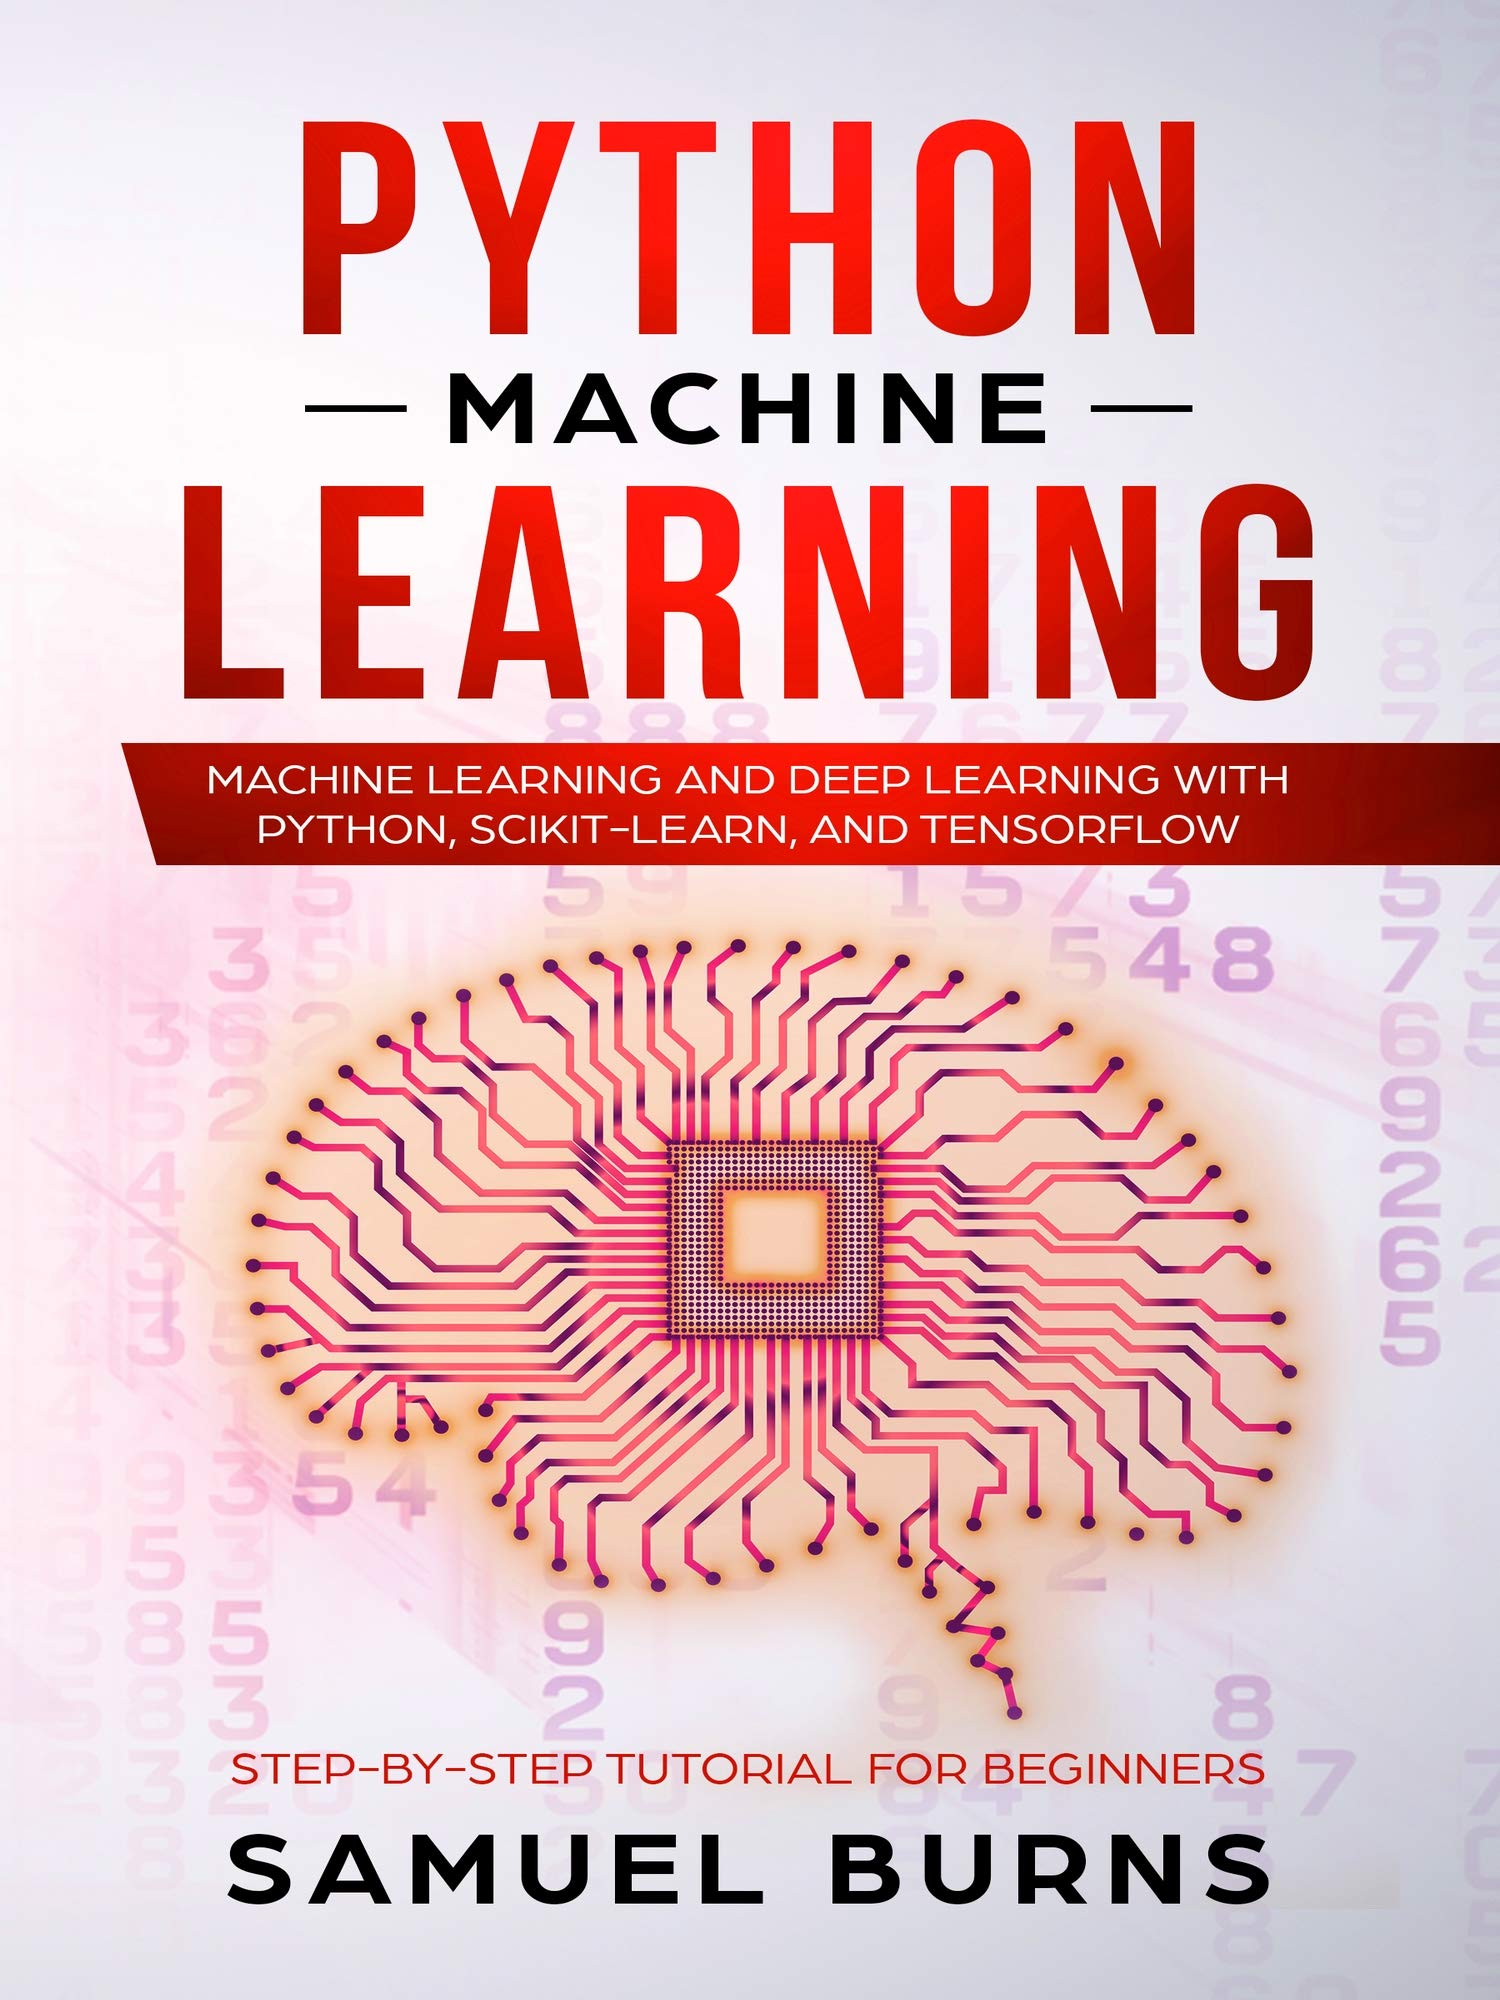 Python Machine Learning: Machine Learning and Deep Learning with Python, scikit-learn and Tensorflow (Step-by-Step Tutorial For Beginners--Updated--) por Samuel Burns